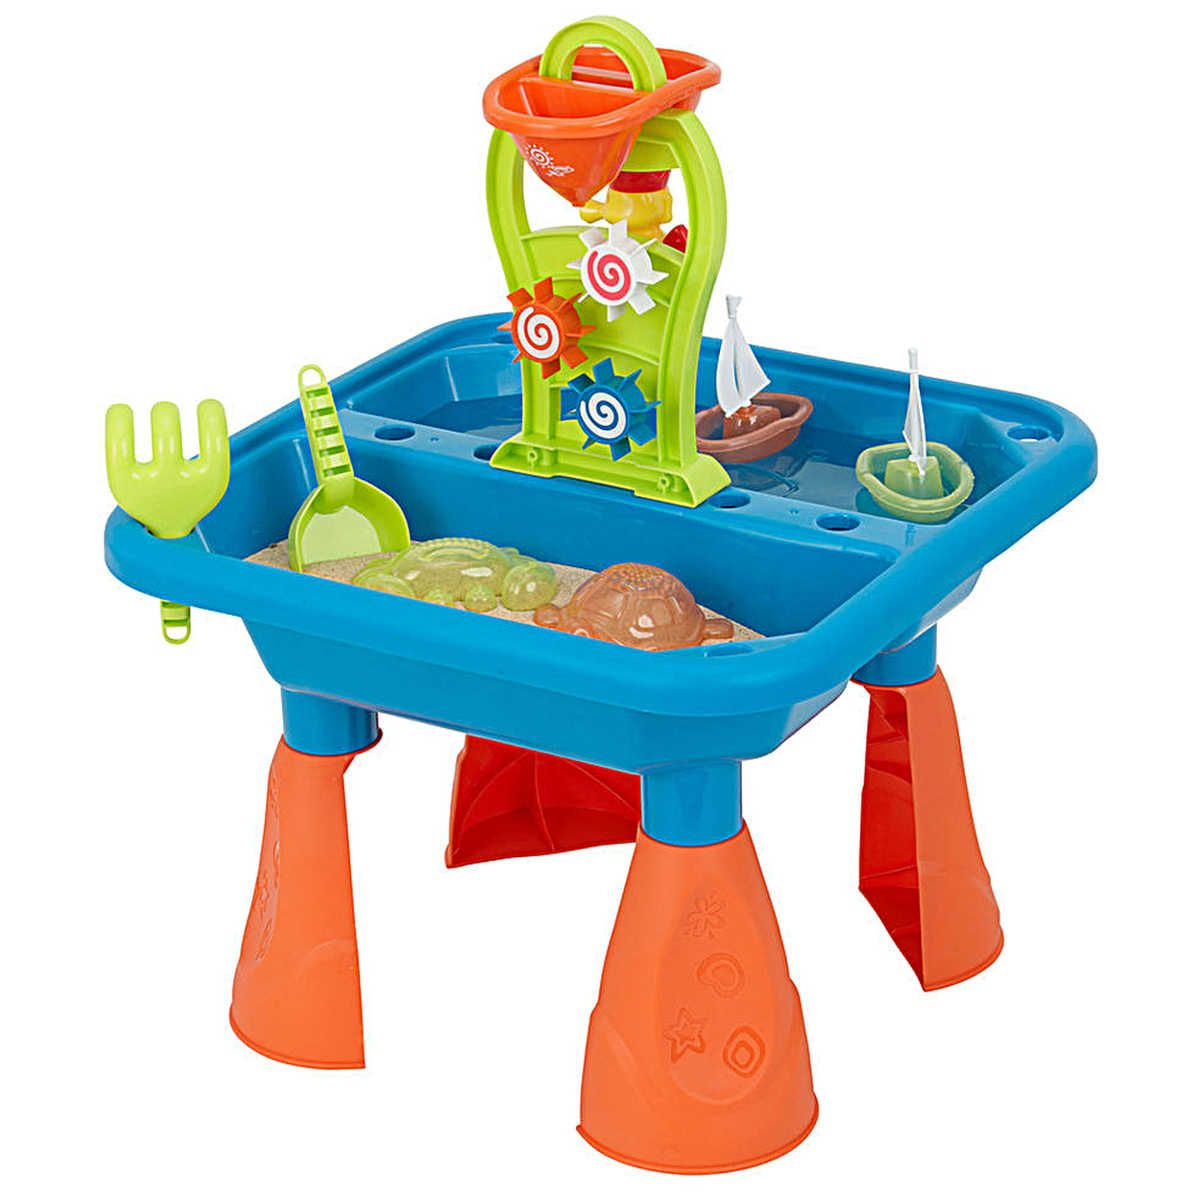 Tinkers Sand And Water Table Sand And Water Table Sand And Water Water Table